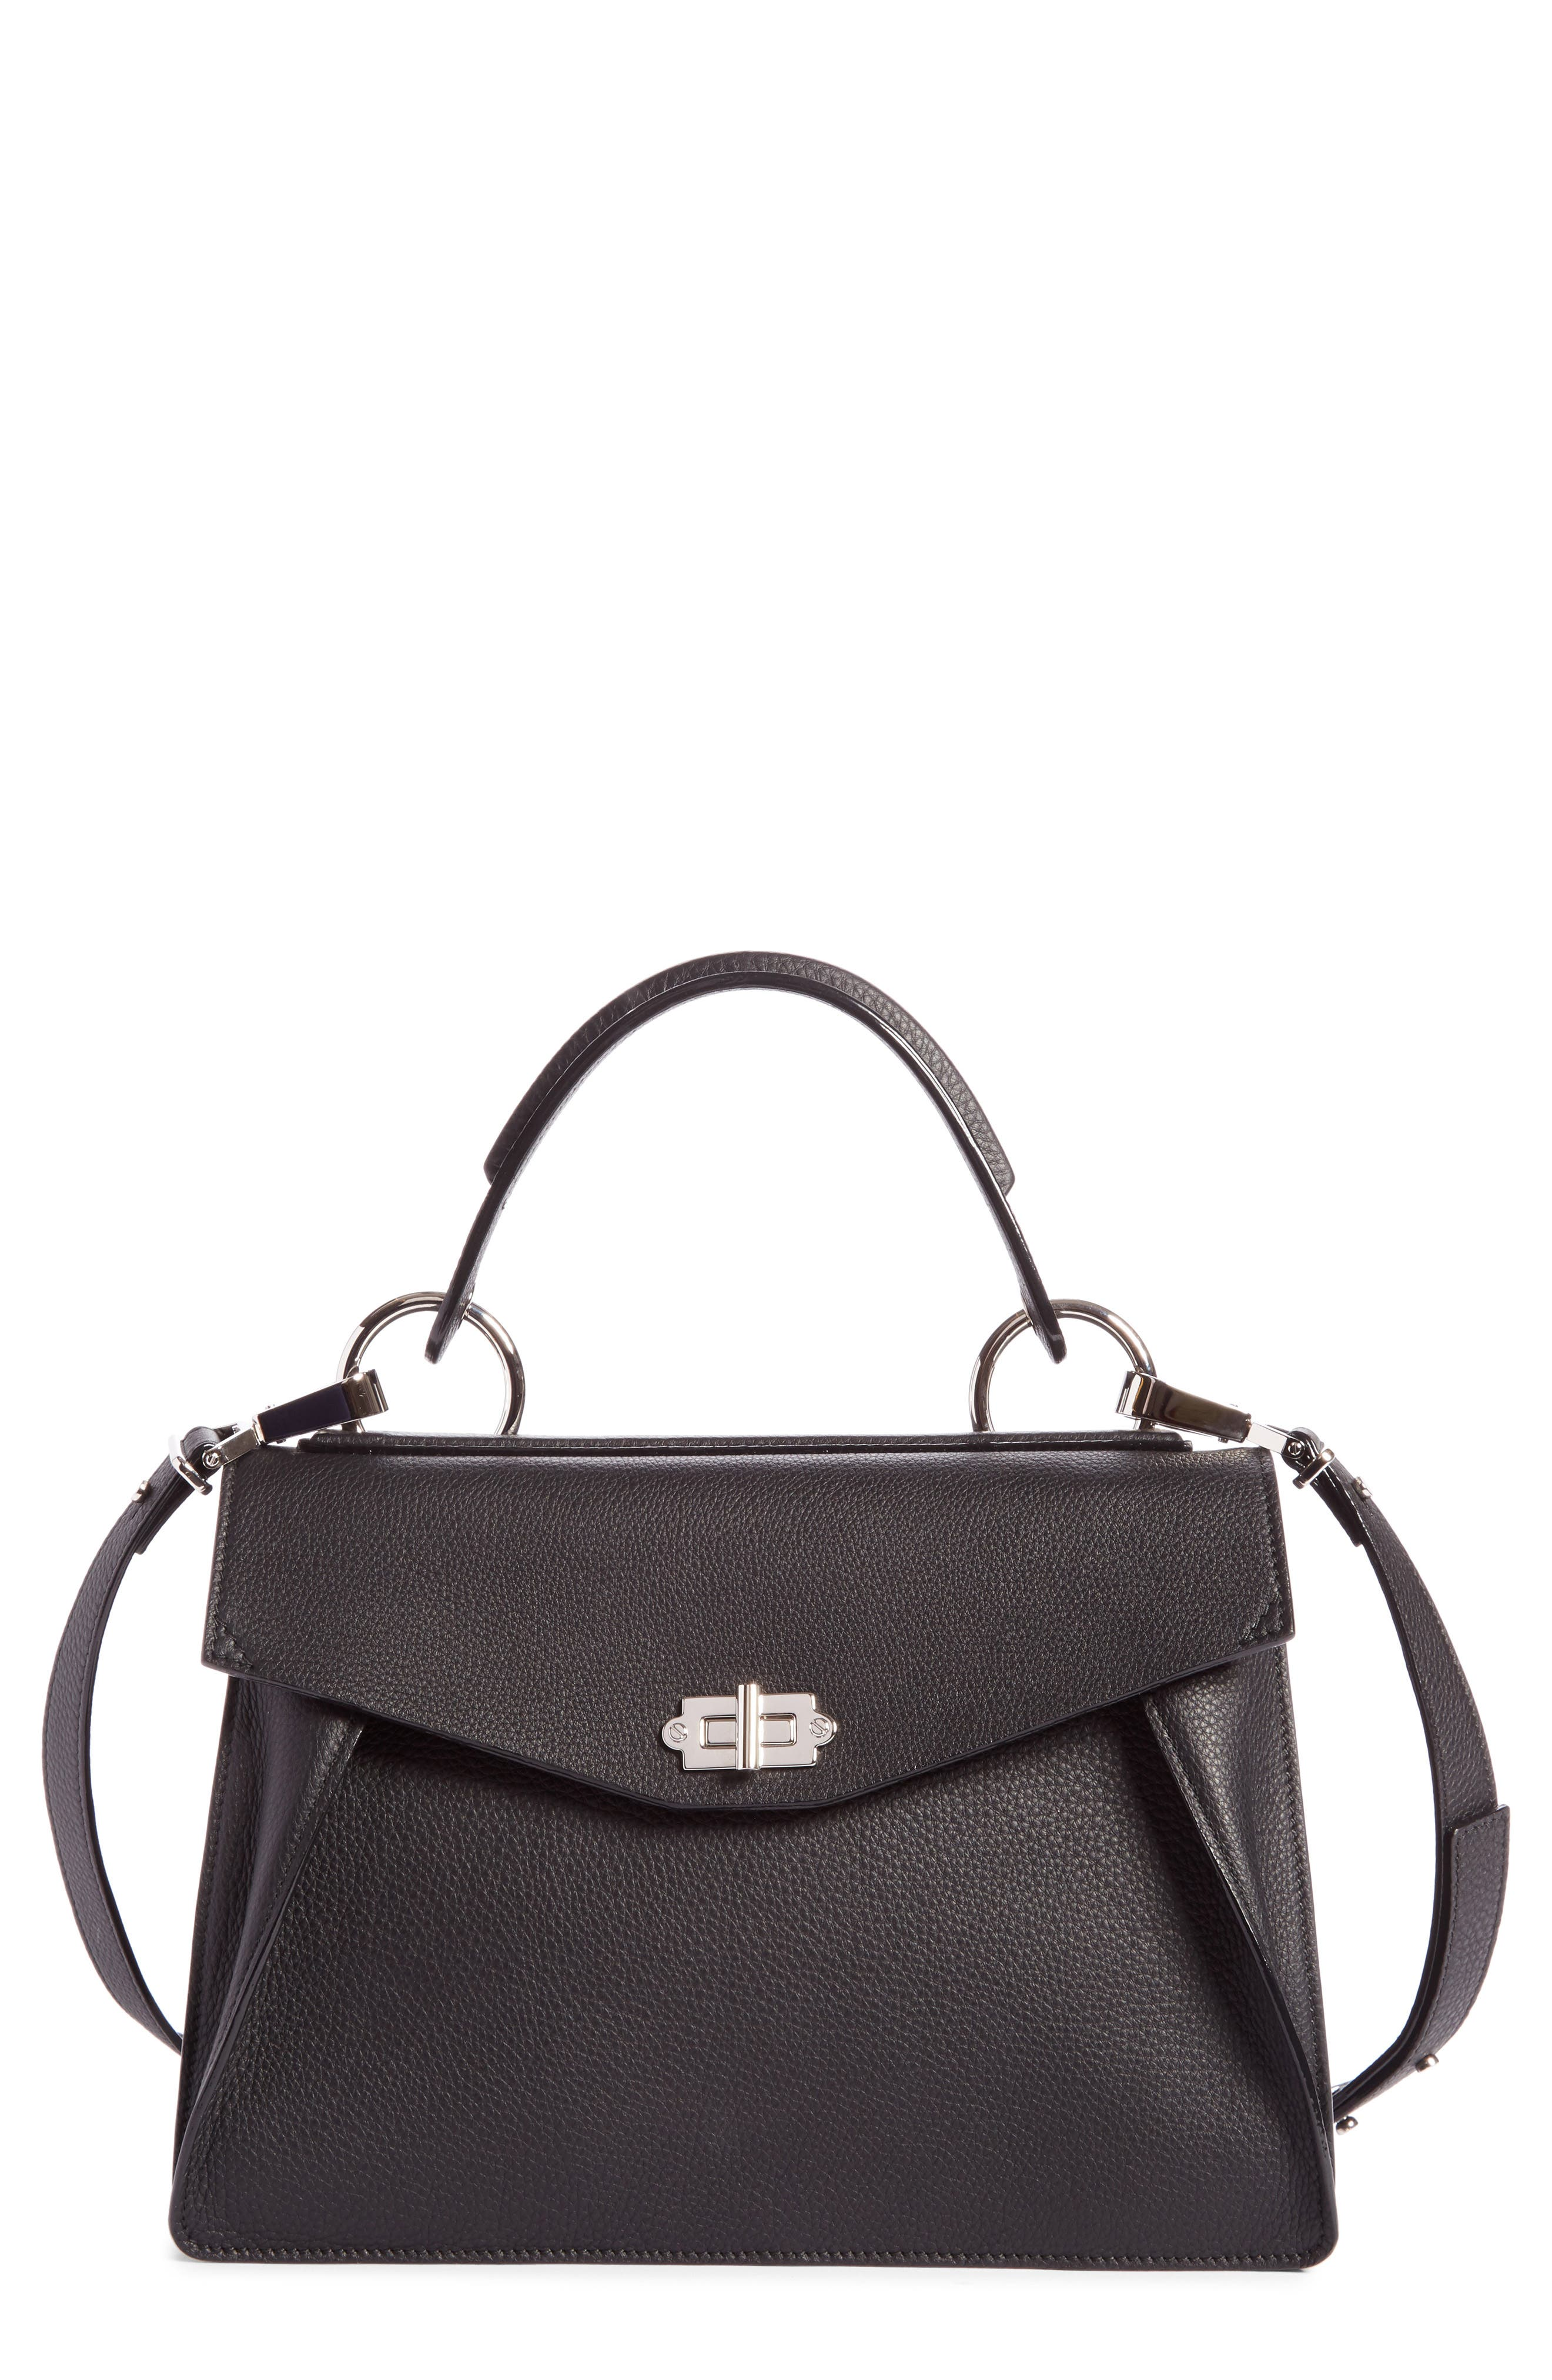 Proenza Schouler Medium Hava Top Handle Leather Satchel